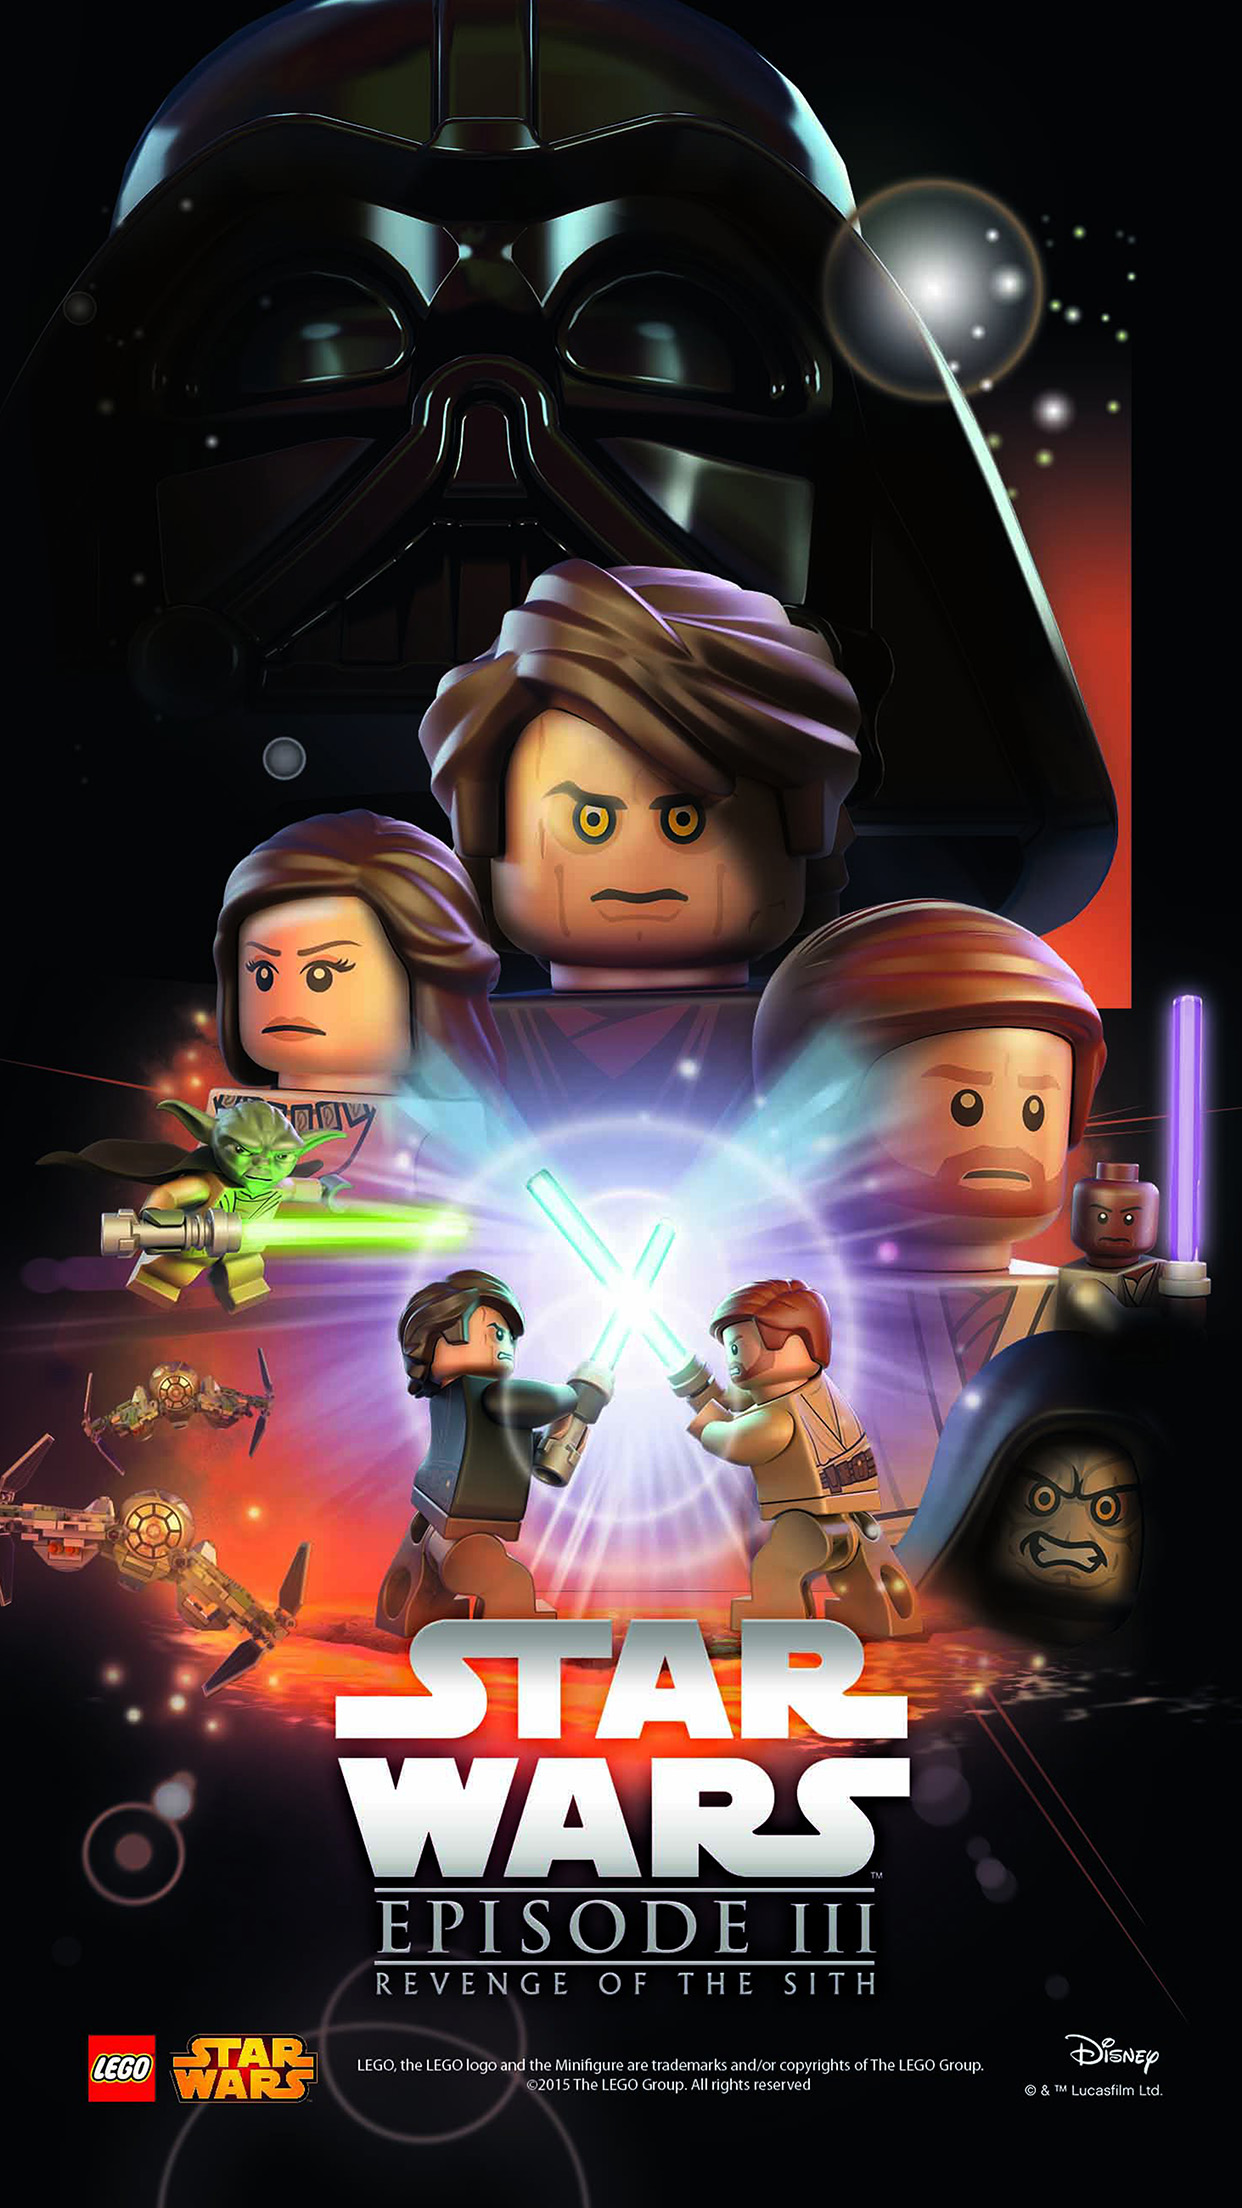 Iphone6papers Co Iphone 6 Wallpaper Ap22 Starwars Lego Episode 3 Revenge Of The Sith Art Film